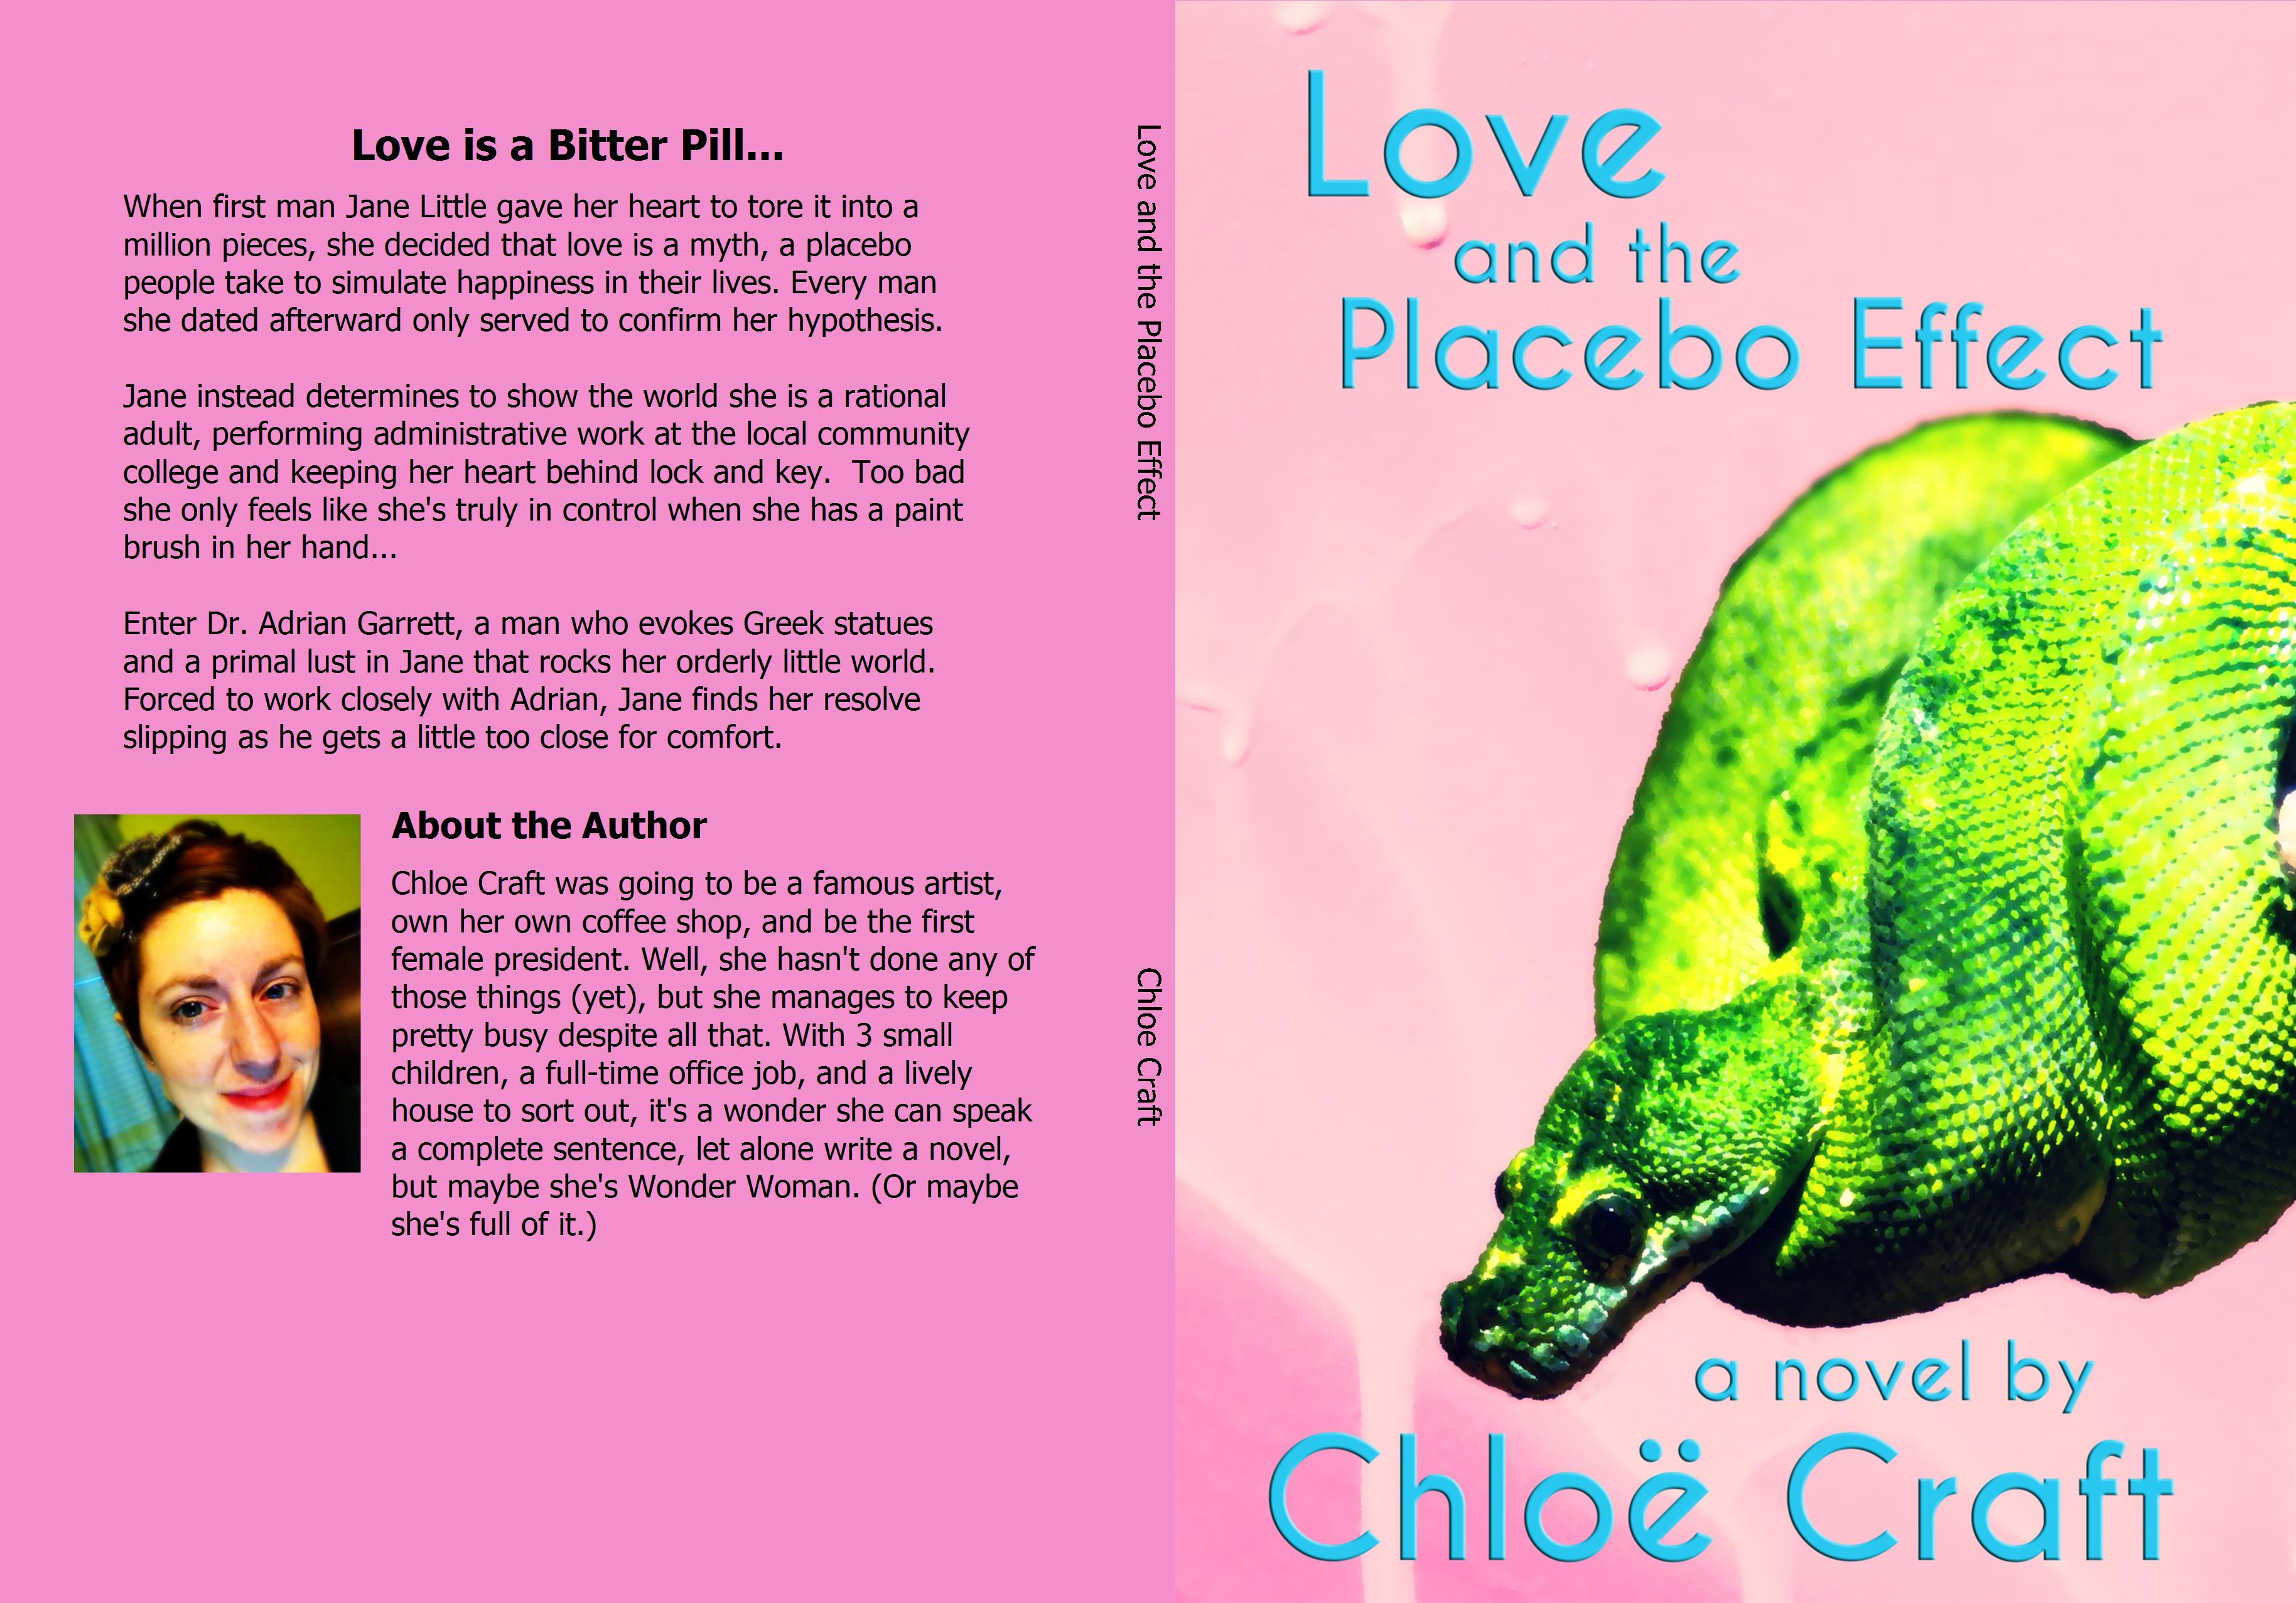 Love and the Placebo Effect cover image